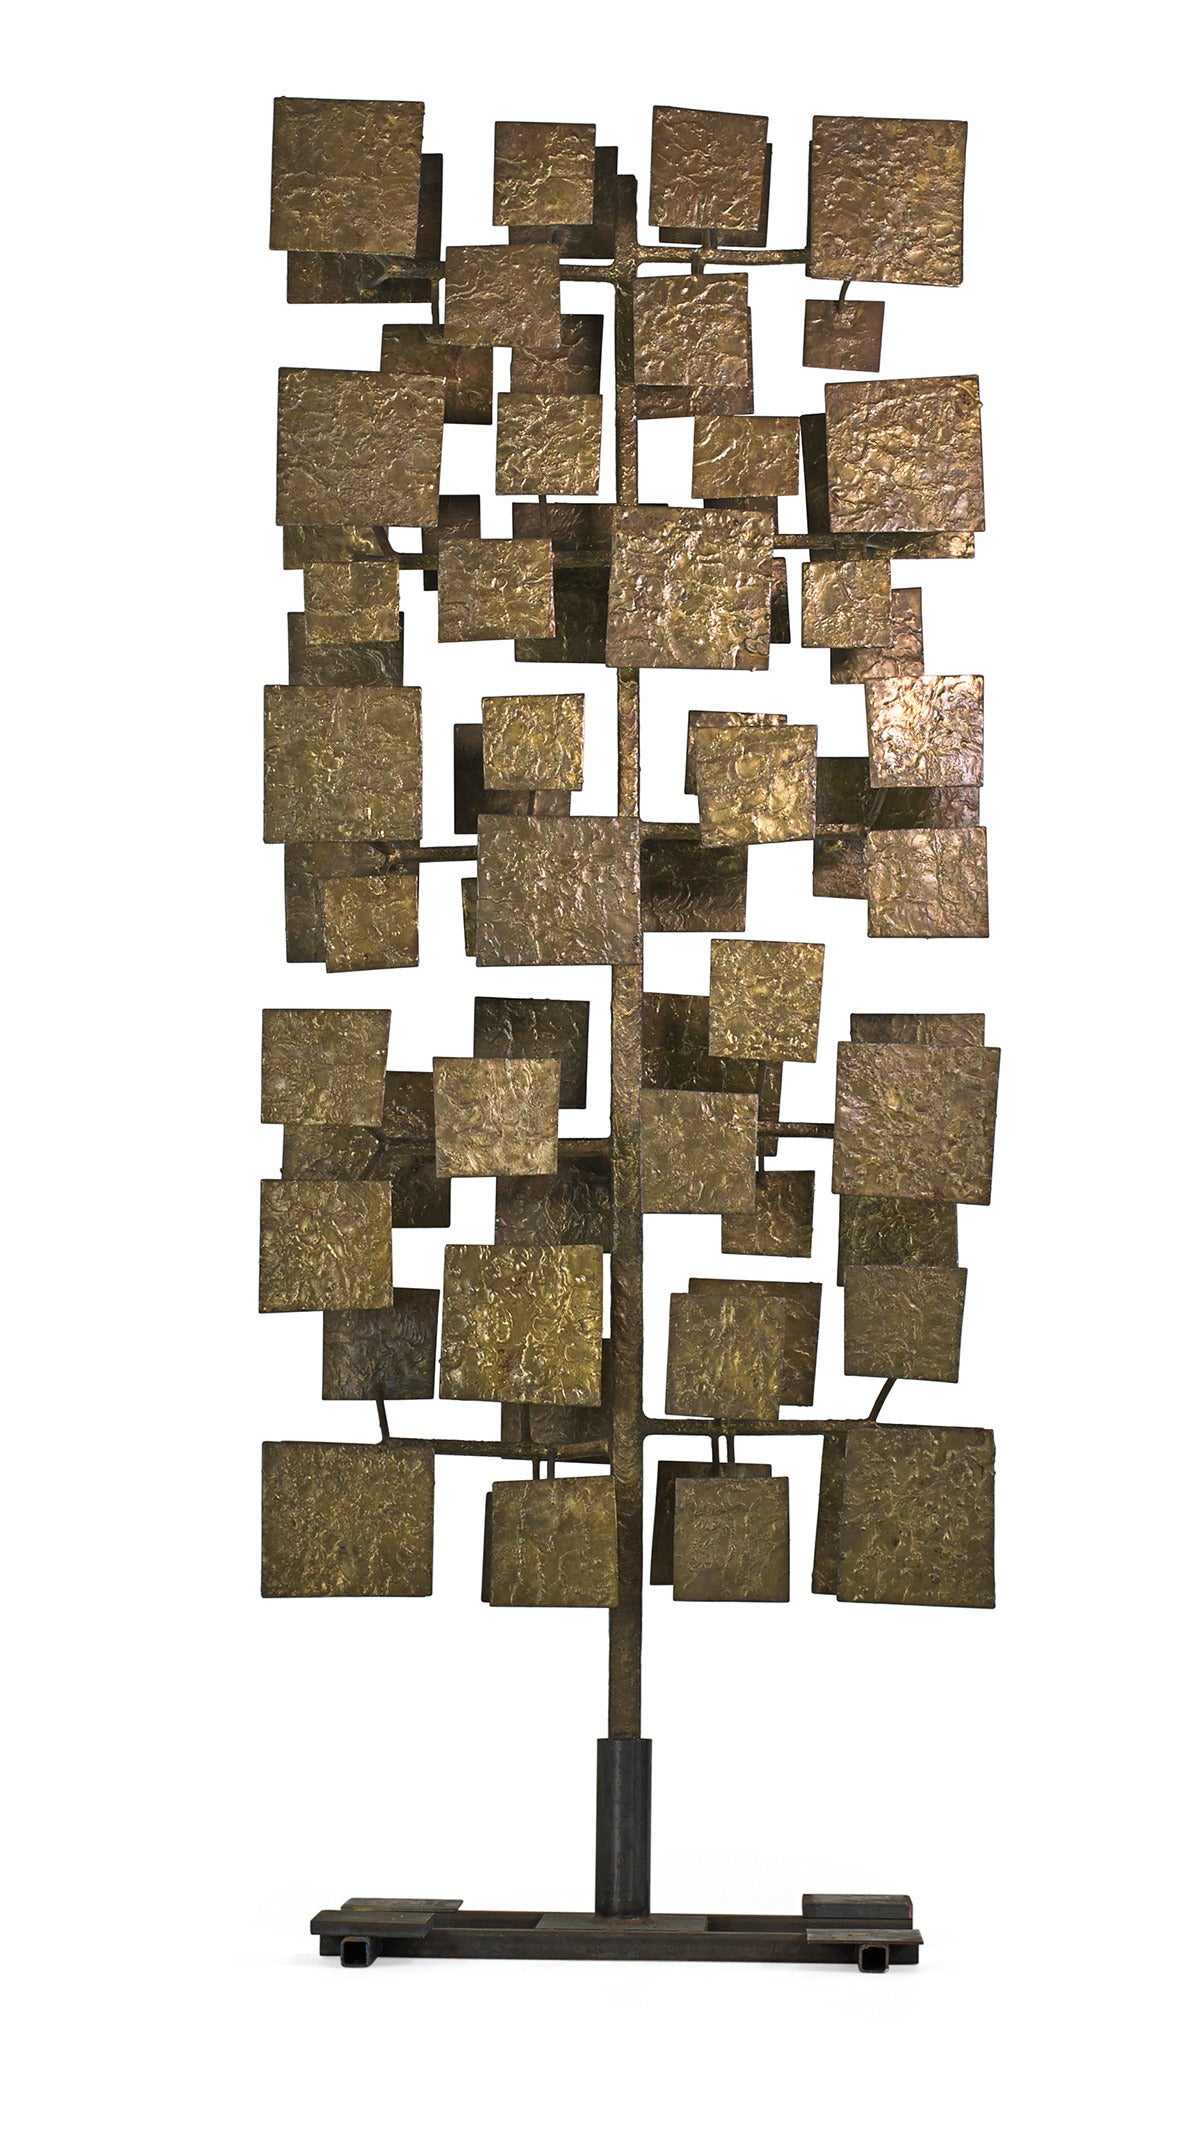 Sculpture screen from a set of ten commissioned by architect and interior designer Florence Knoll for the First National Bank of Miami. The screens were amongst the earliest of approximately fifty commissions Bertoia executed during his career.